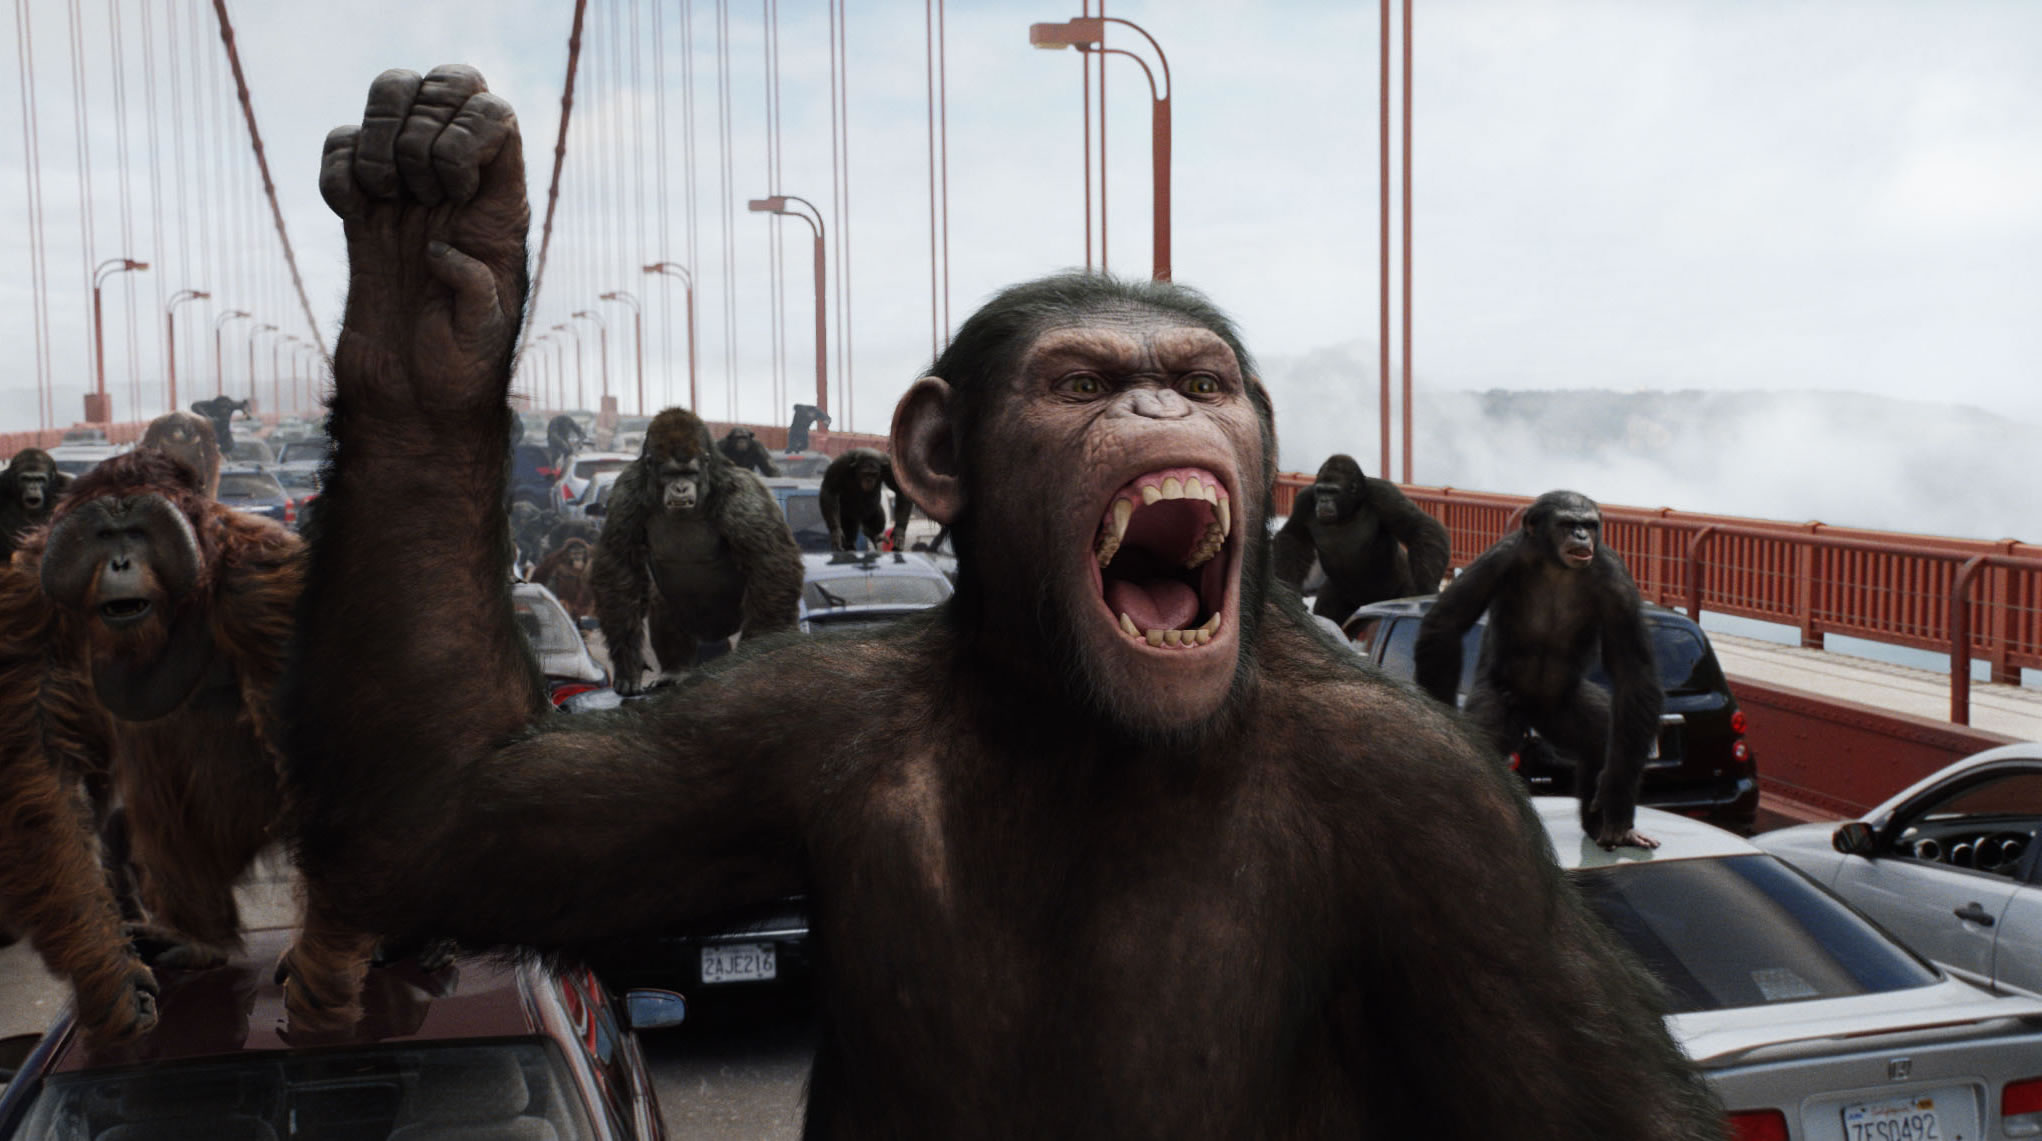 rise-of-the-planet-of-hte-apes.jpg